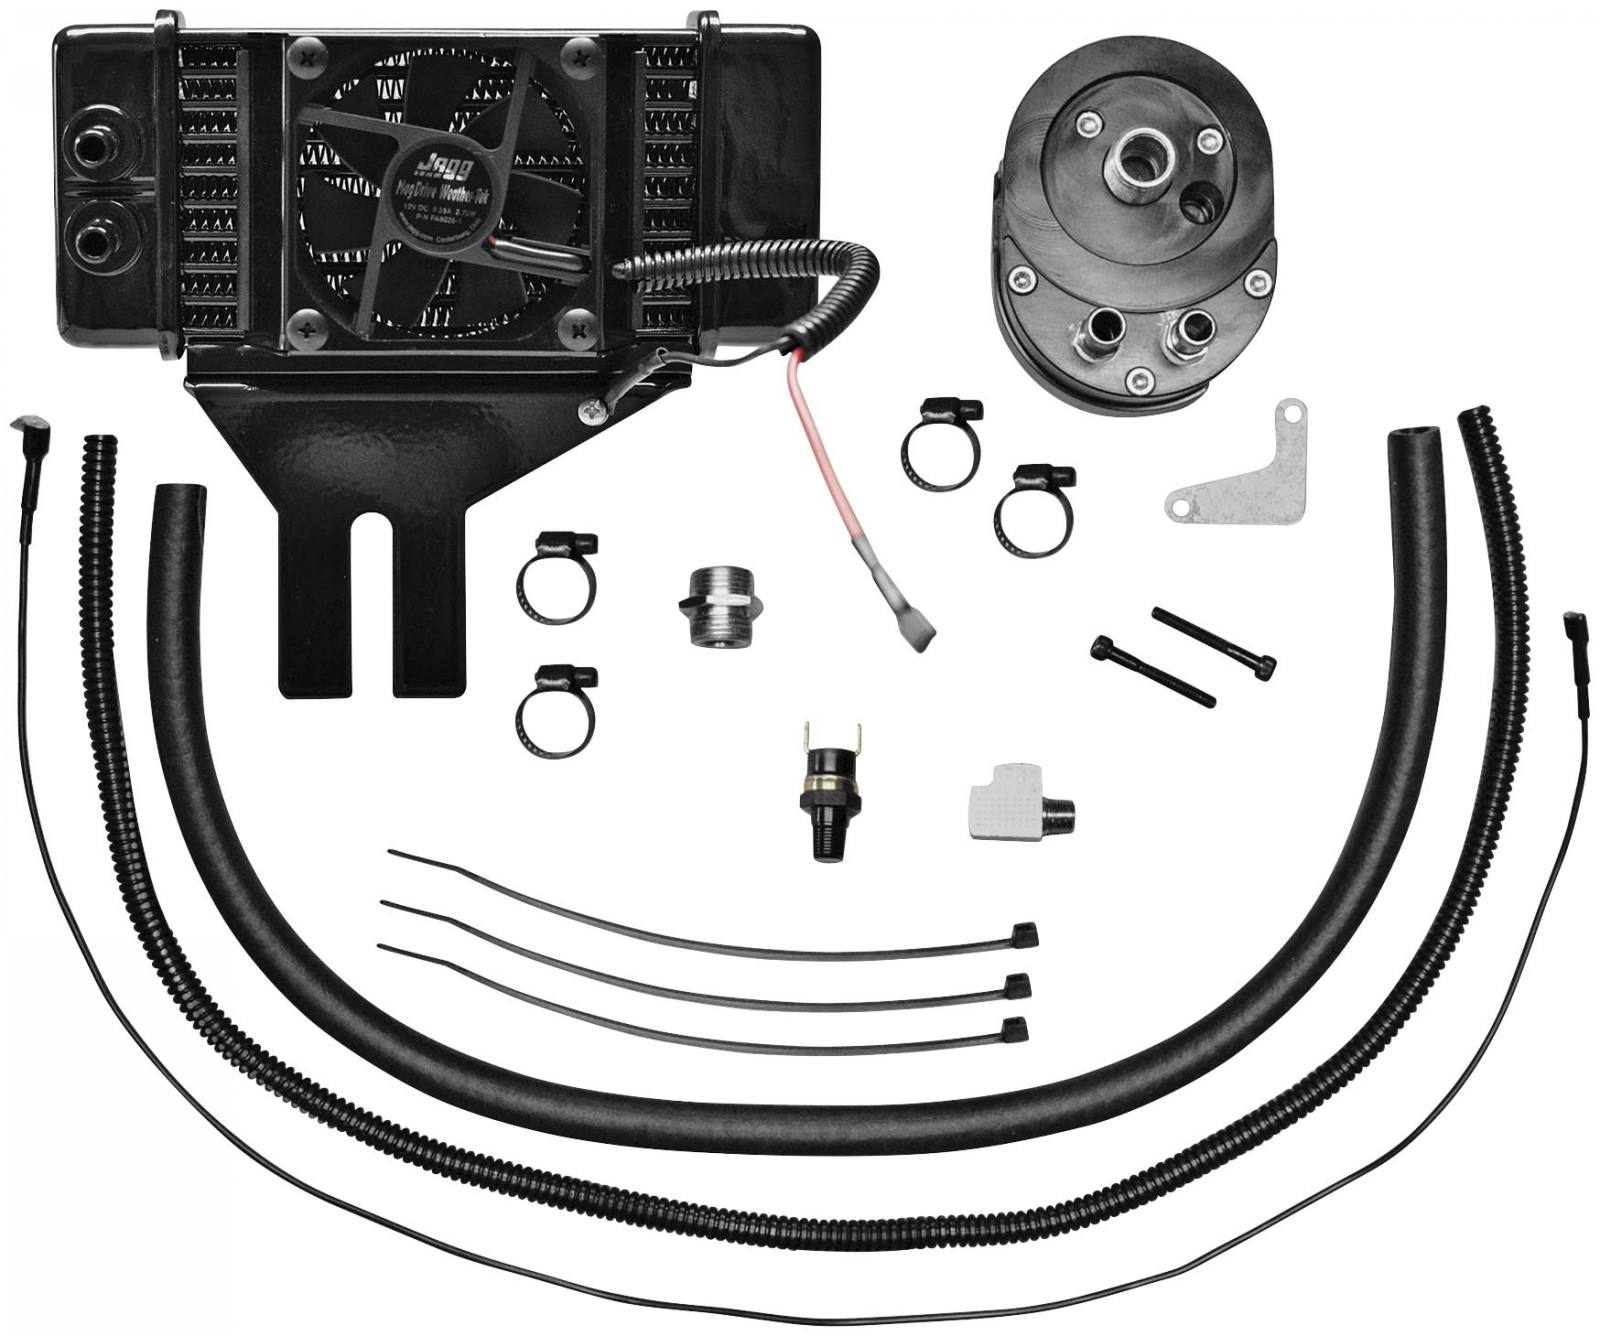 Horizontal Low Mount 10 Row Fan Assisted Oil Cooler Kit For Sale In 1996 Fxds Wiring Diagram Bonduel Wi Docs Harley Davidson Of Shawano County 715 758 9080